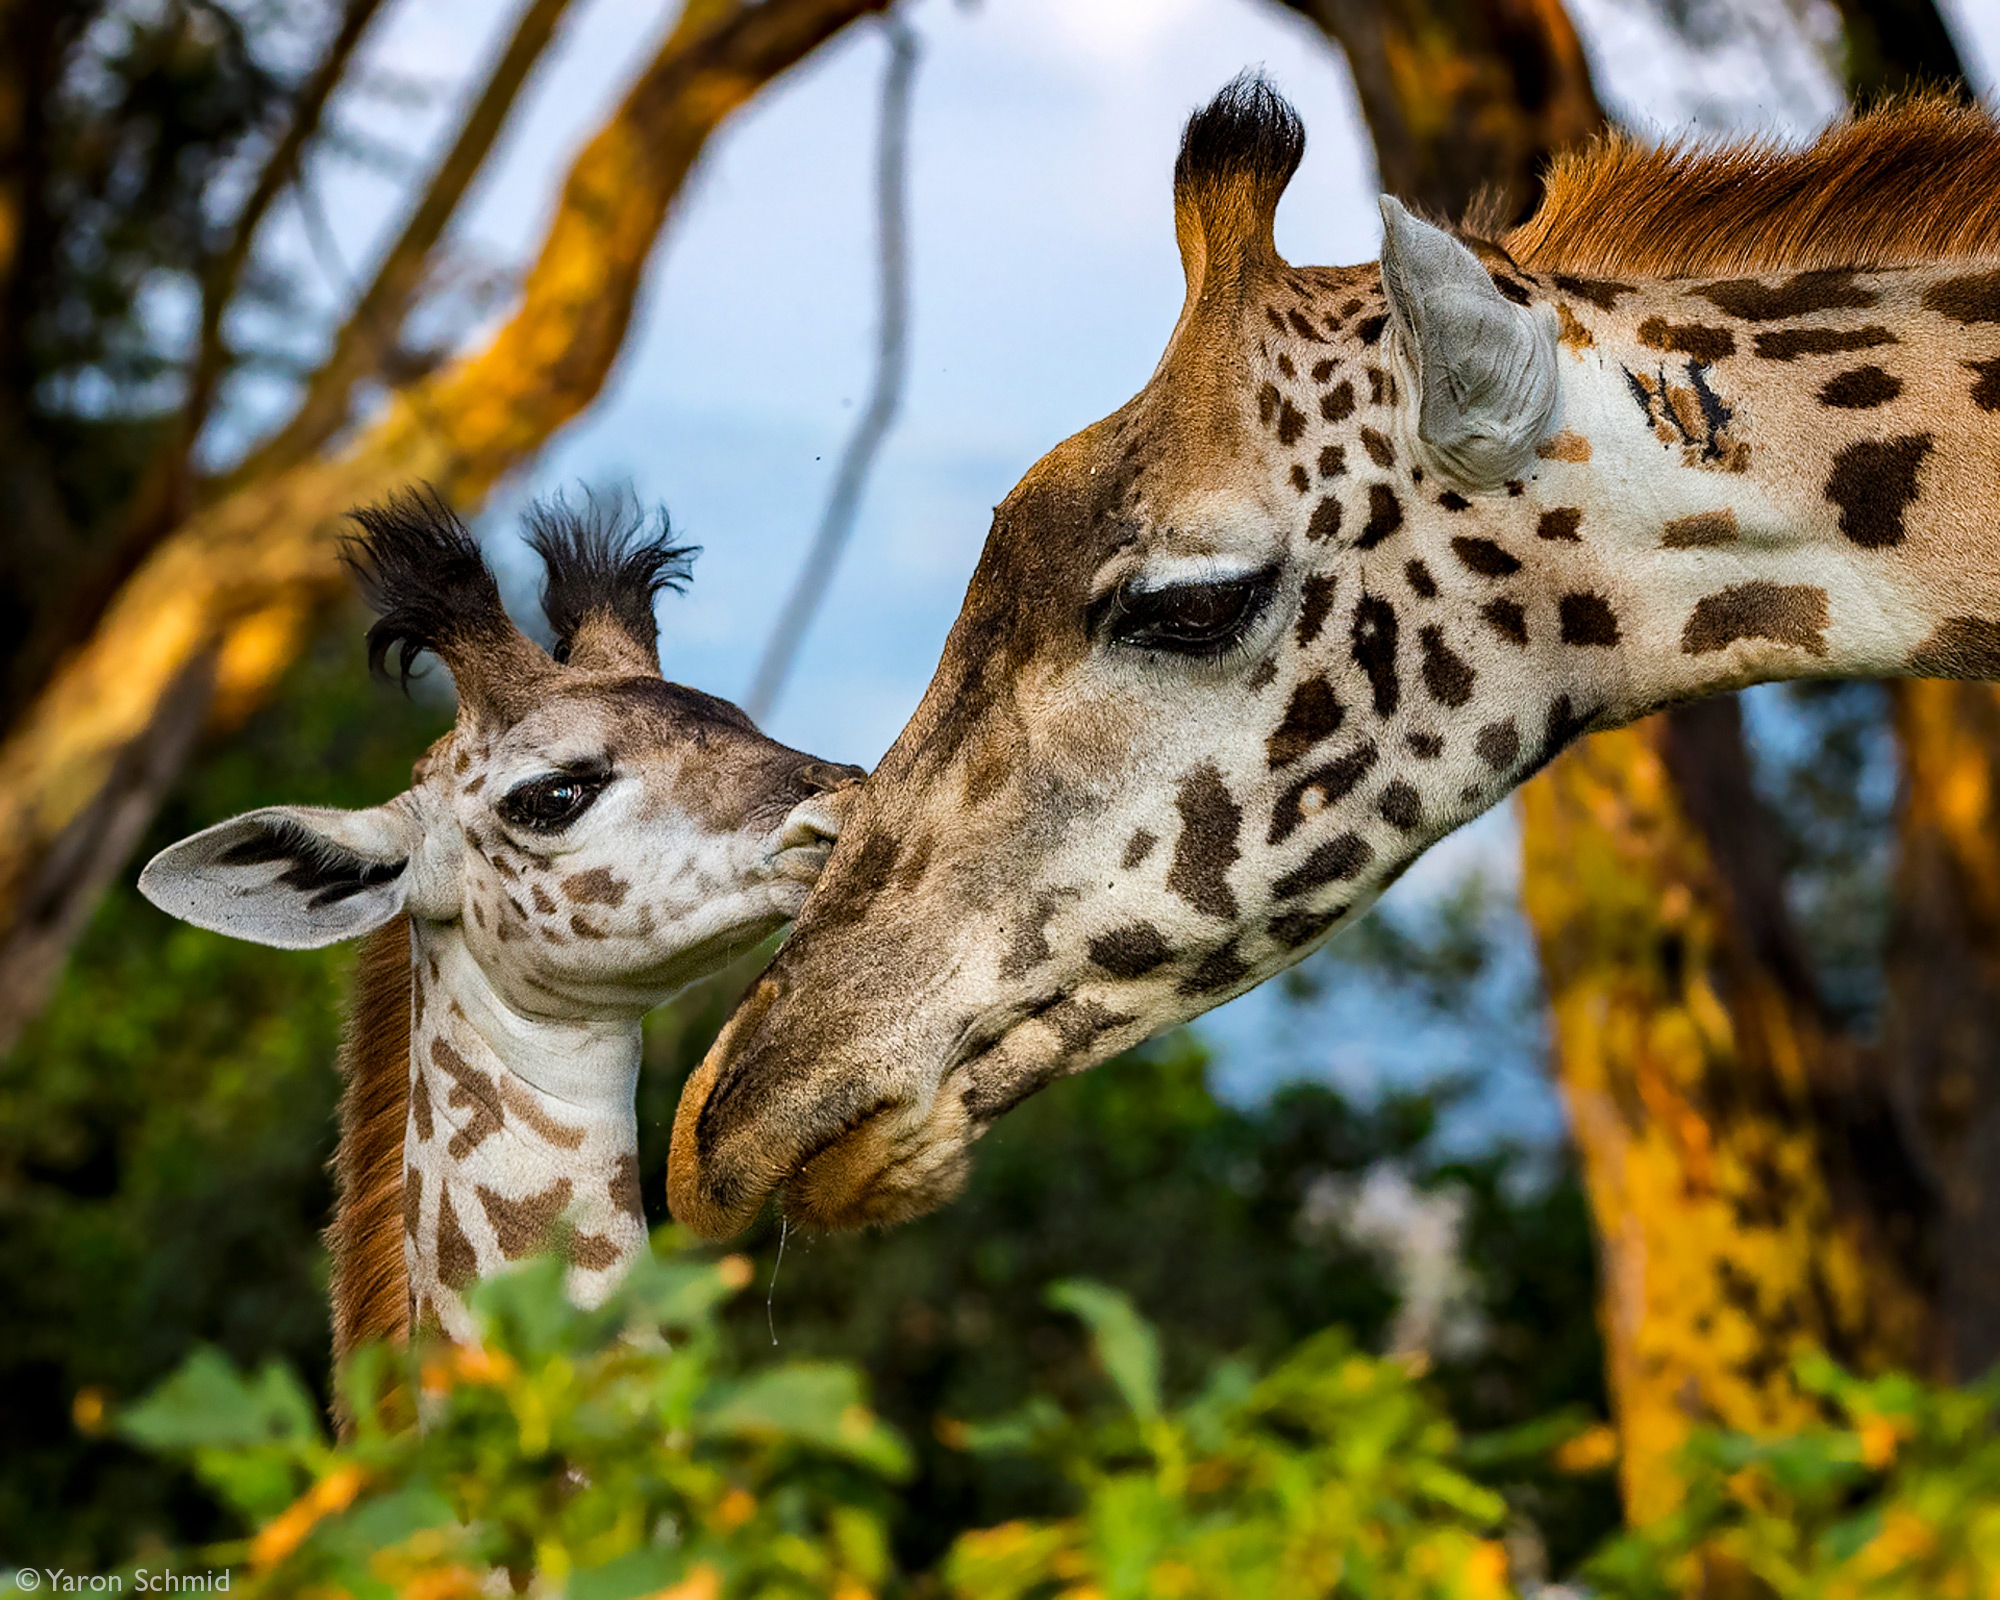 A tender moment between a giraffe and her calf in Naivasha, Kenya